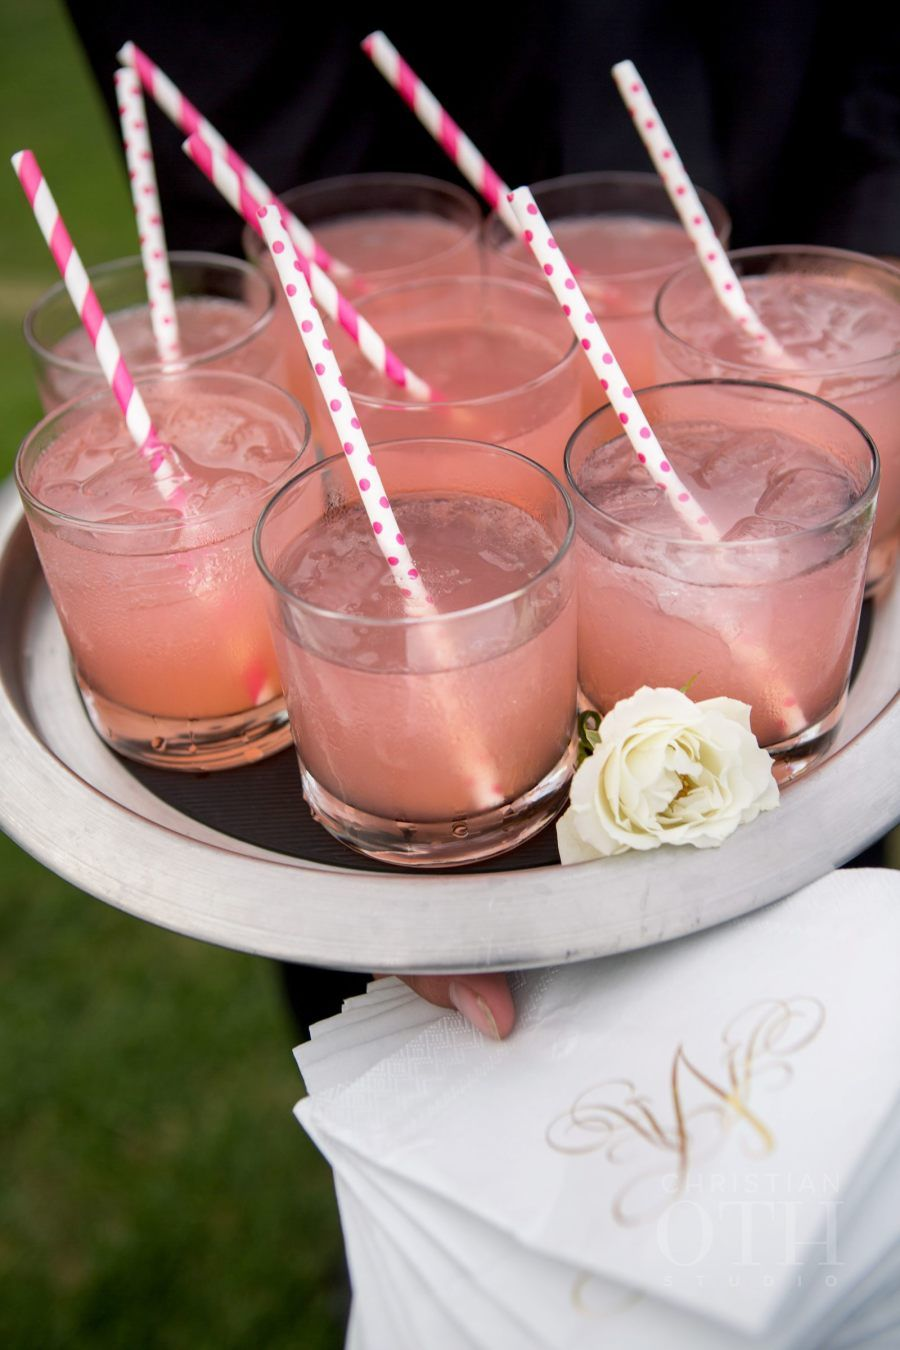 Have a signature drink with cute straws and monogrammed napkins at your bridal shower! #romance #marriage #wedding #bridalshower #weddingshower